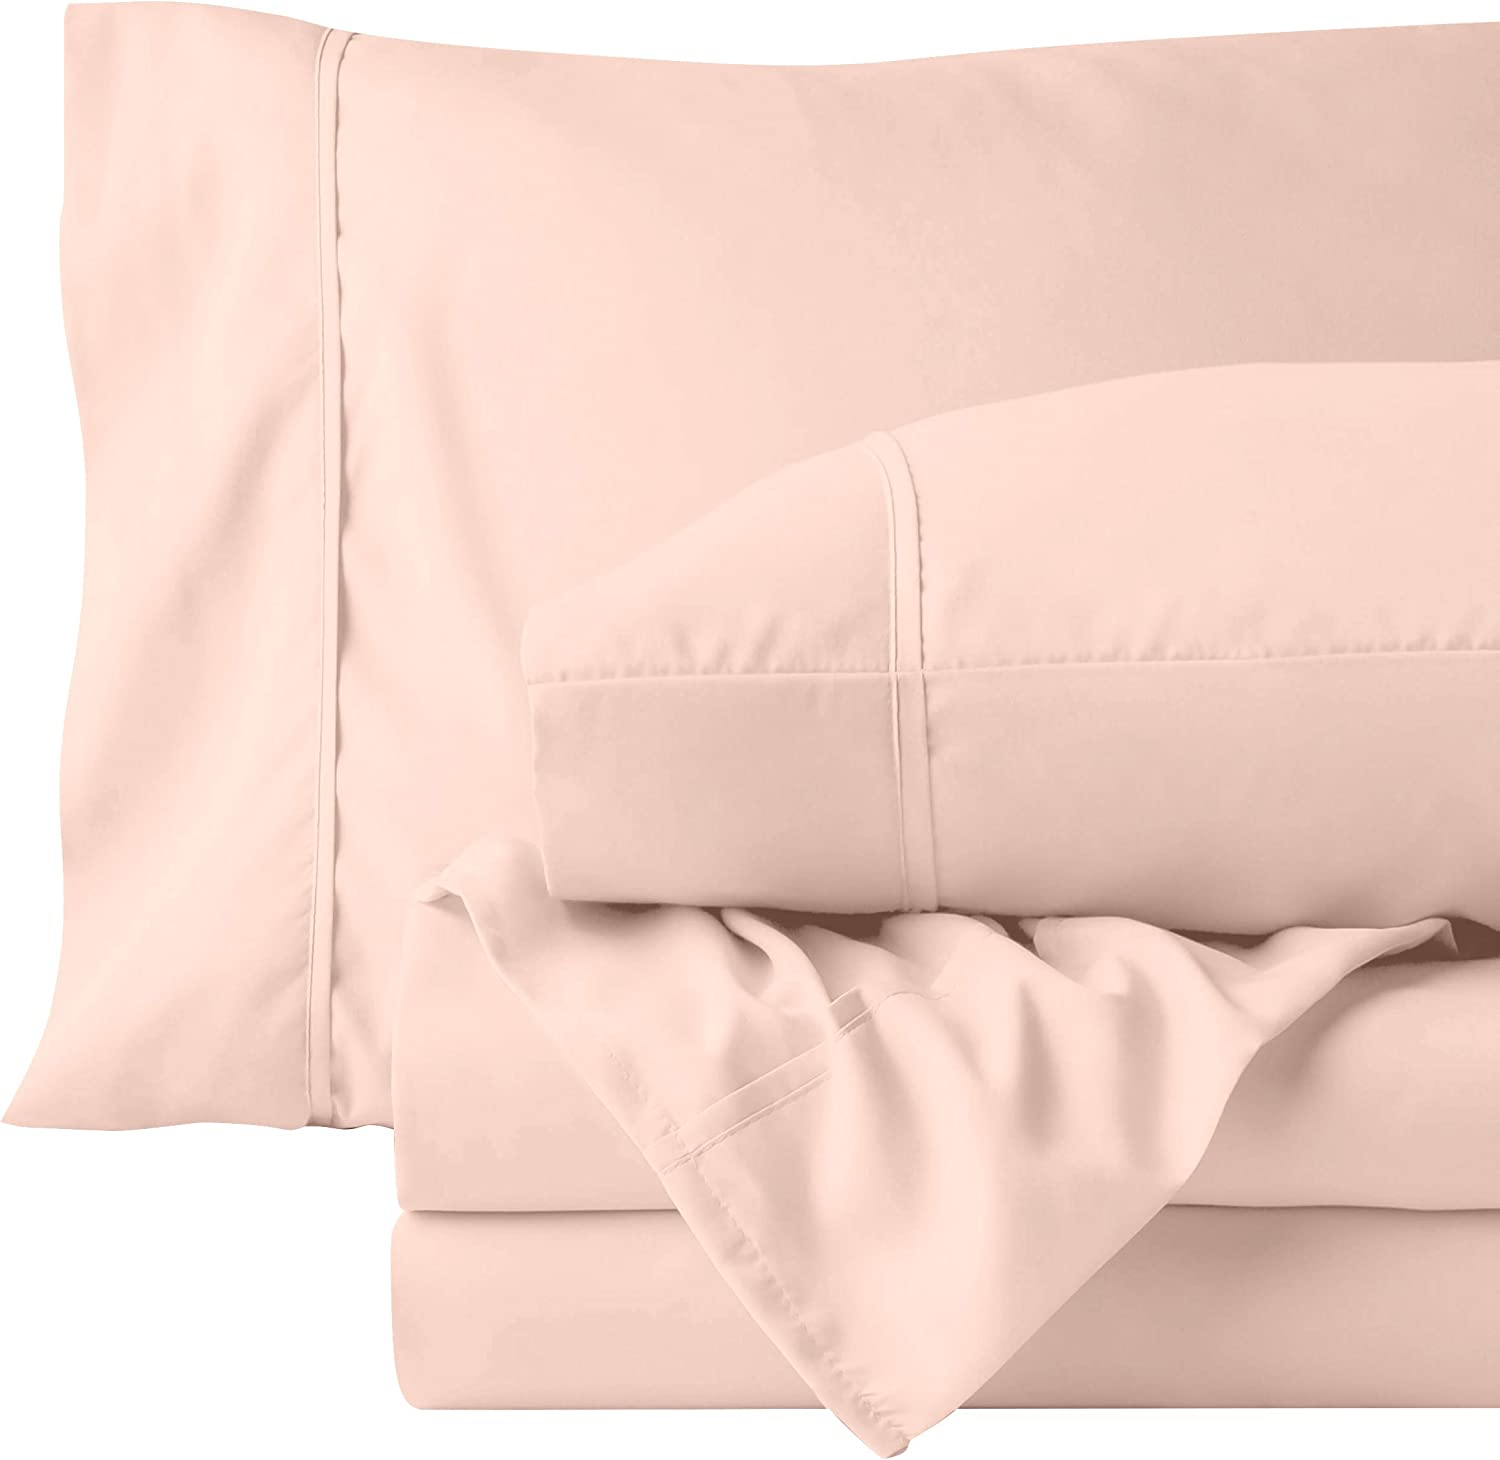 URBANHUT Egyptian Cotton Sheets Set (4 Piece) 700 Thread Count - Bedspread Deep Pocket Premium Bedding Set, Luxury Bed Sheets for Hotel Collection Sateen Weave (Blush, King)